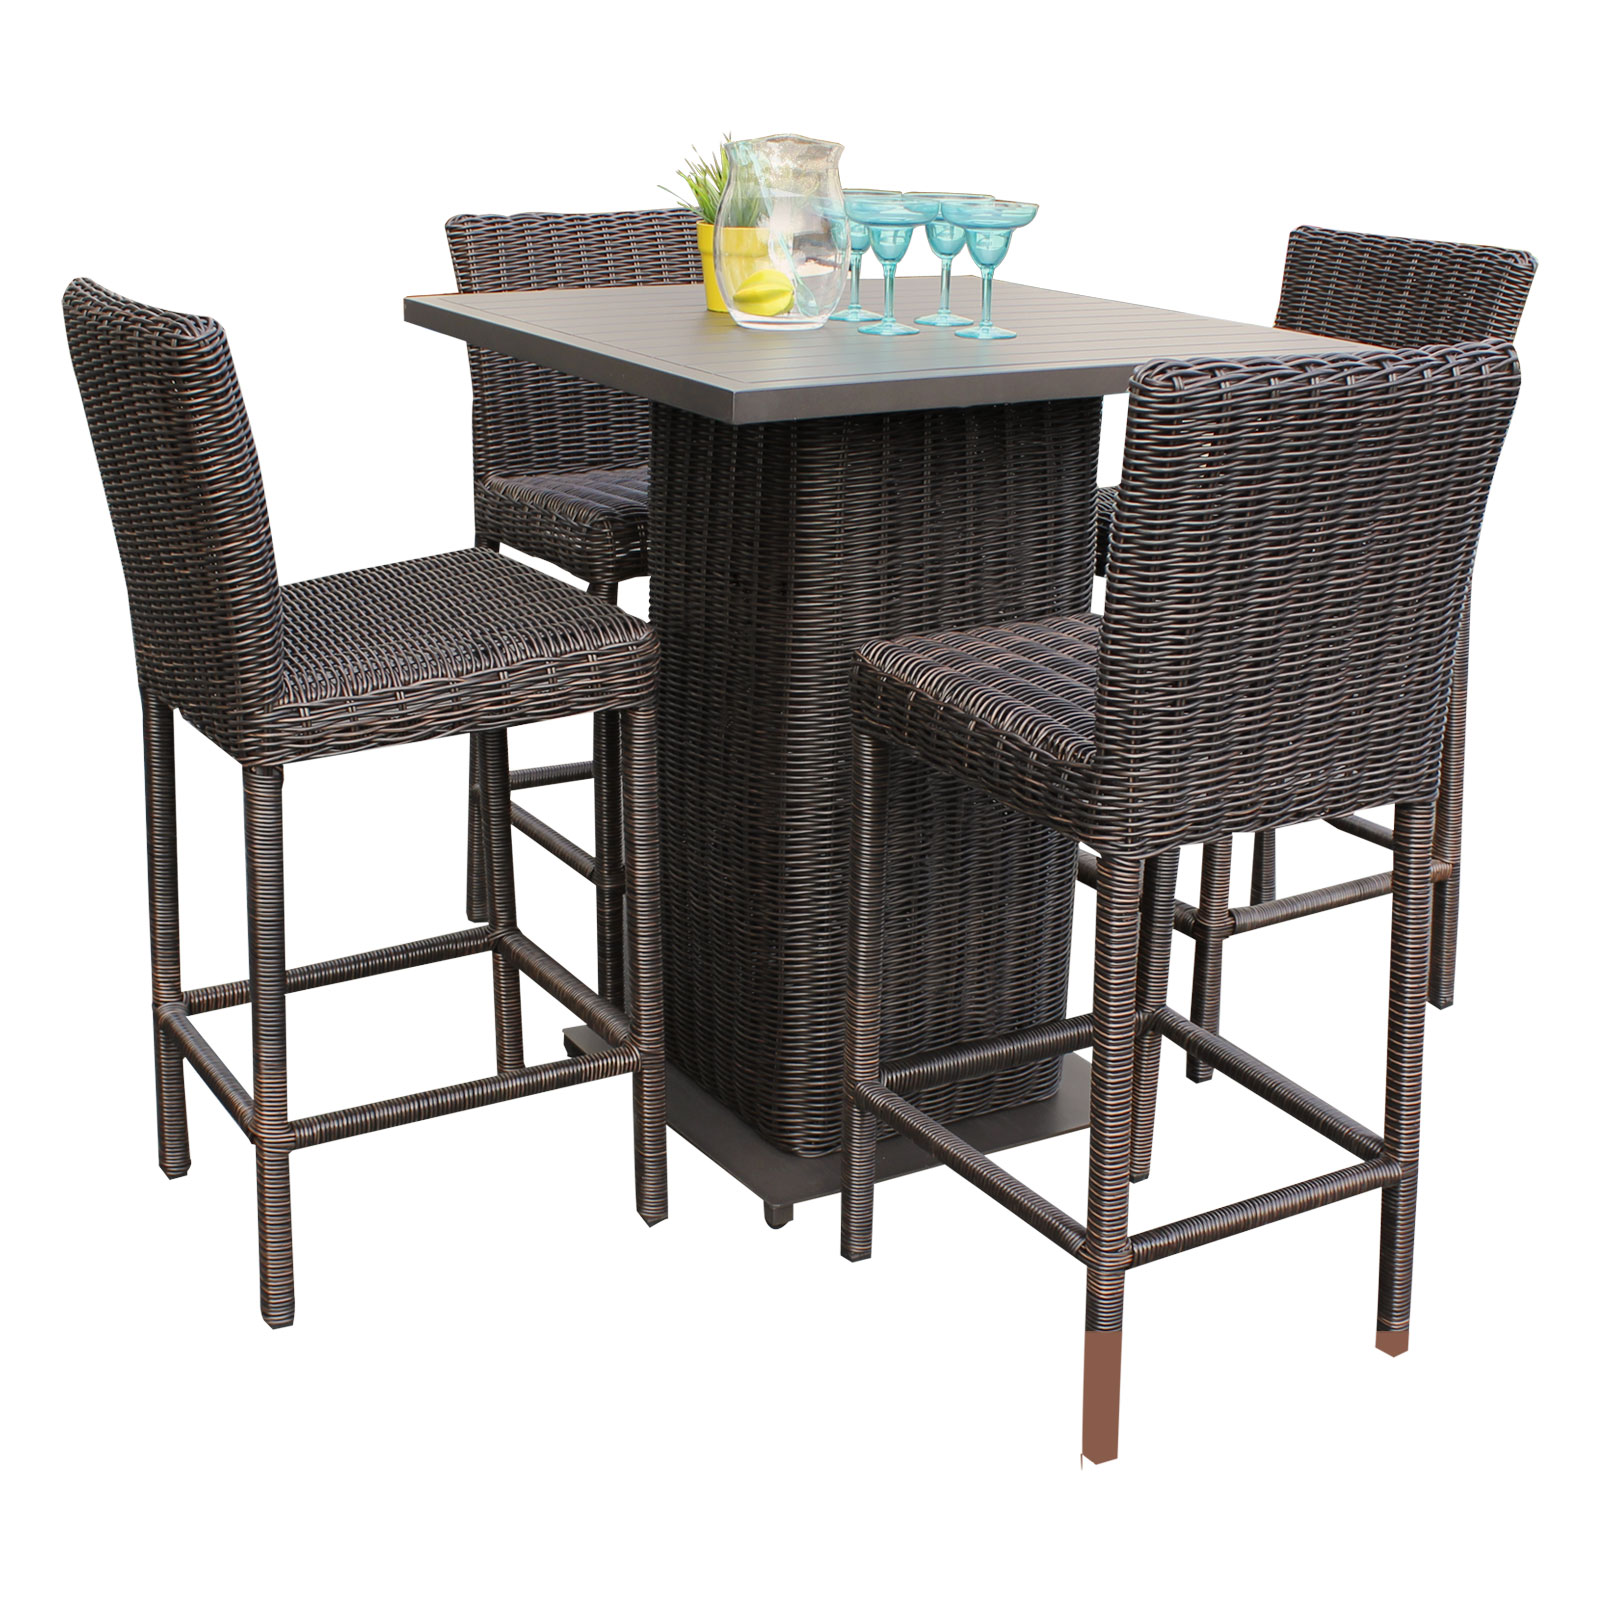 Delicieux Rustico Pub Table Set With Barstools 5 Piece Outdoor Wicker Patio Furniture